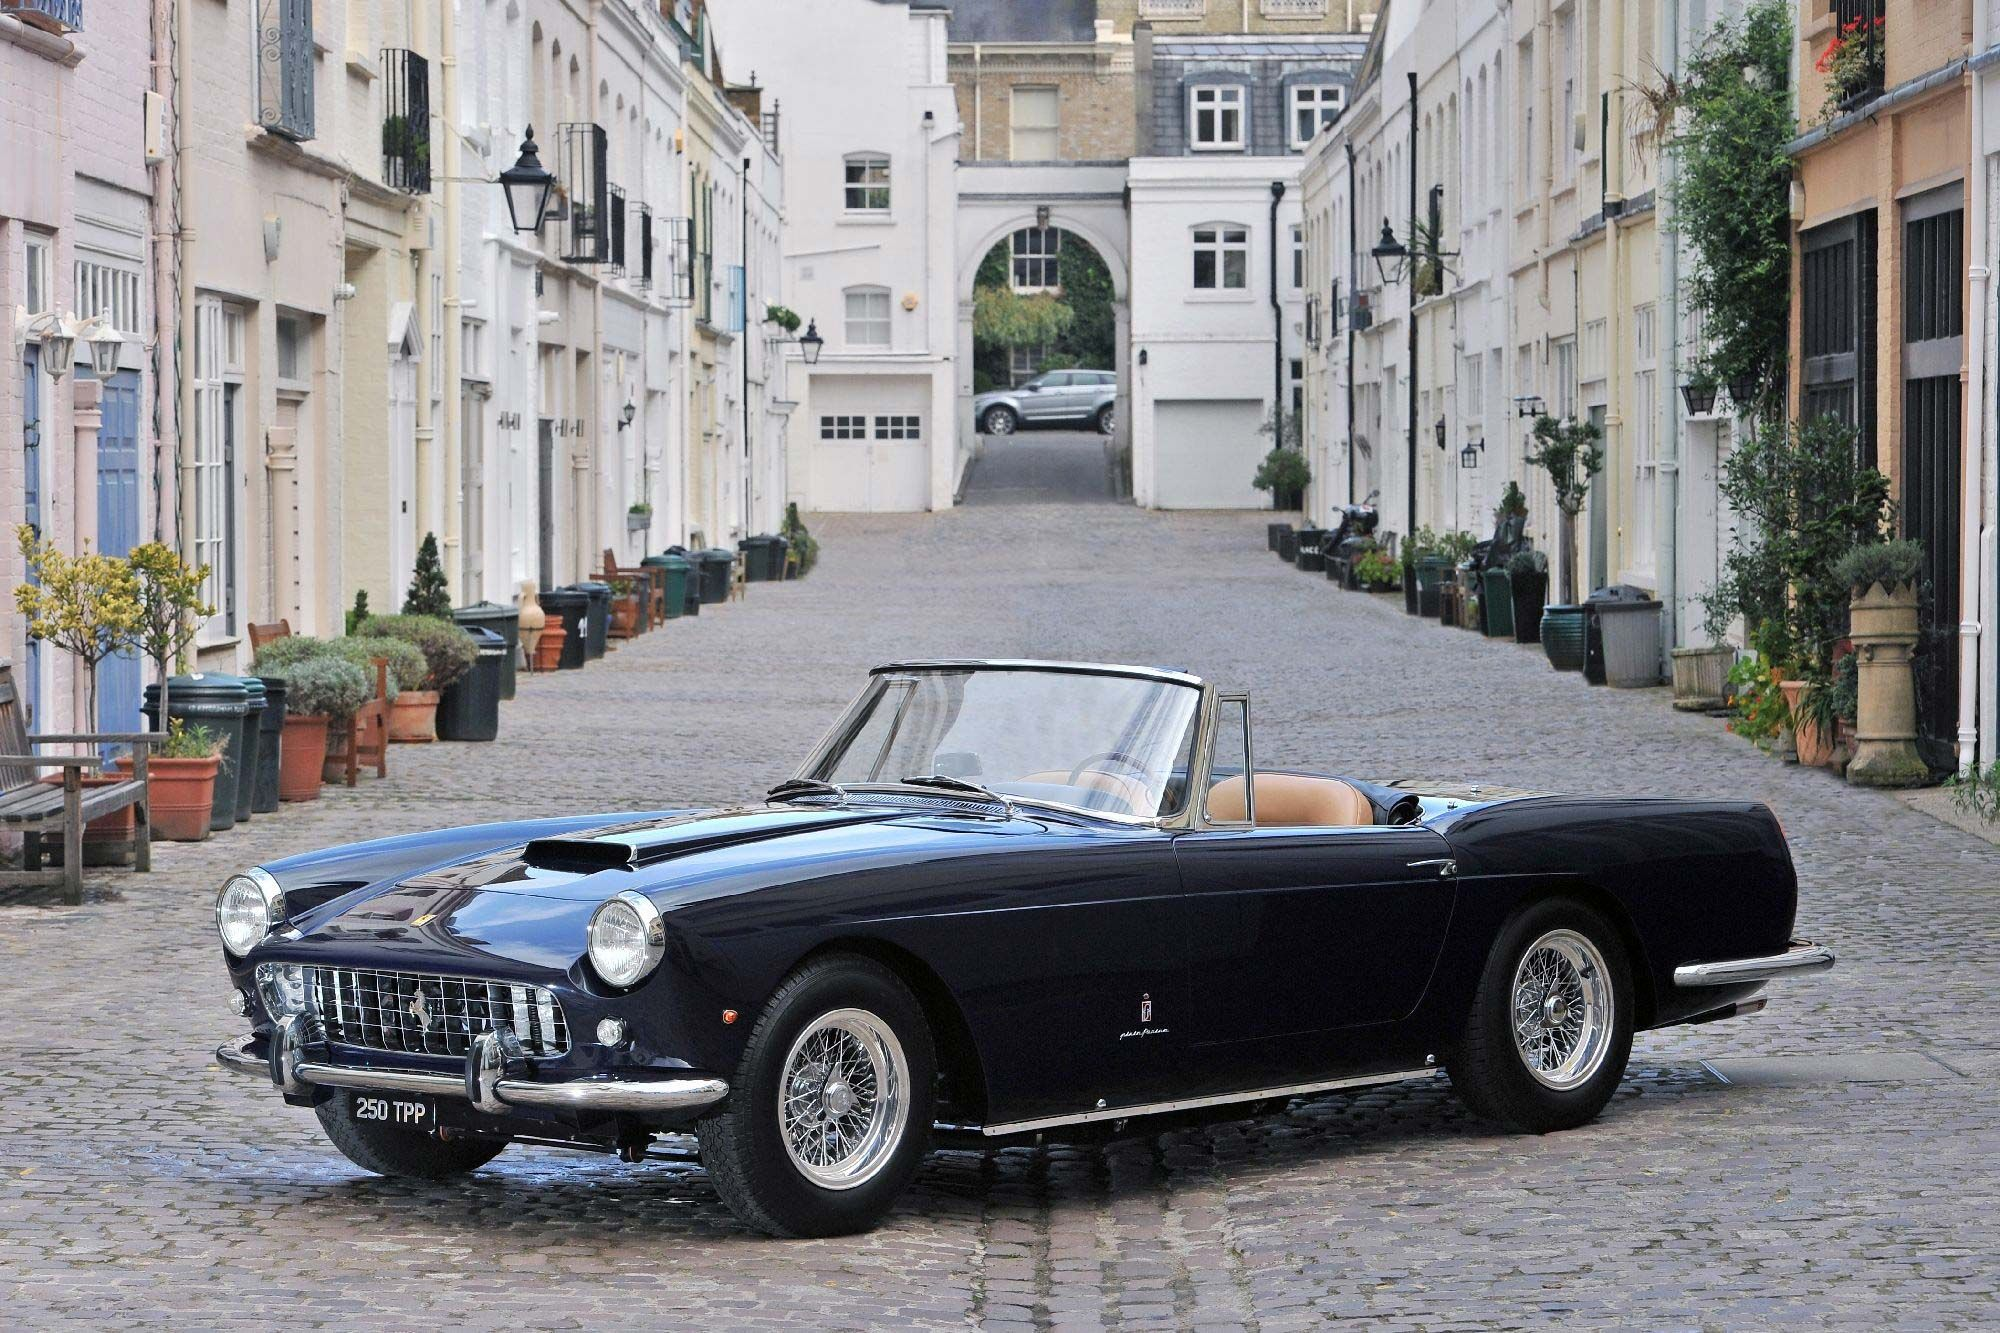 1962 Ferrari 250 Gt Pf Cabriolet Cars For Sale Fiskens